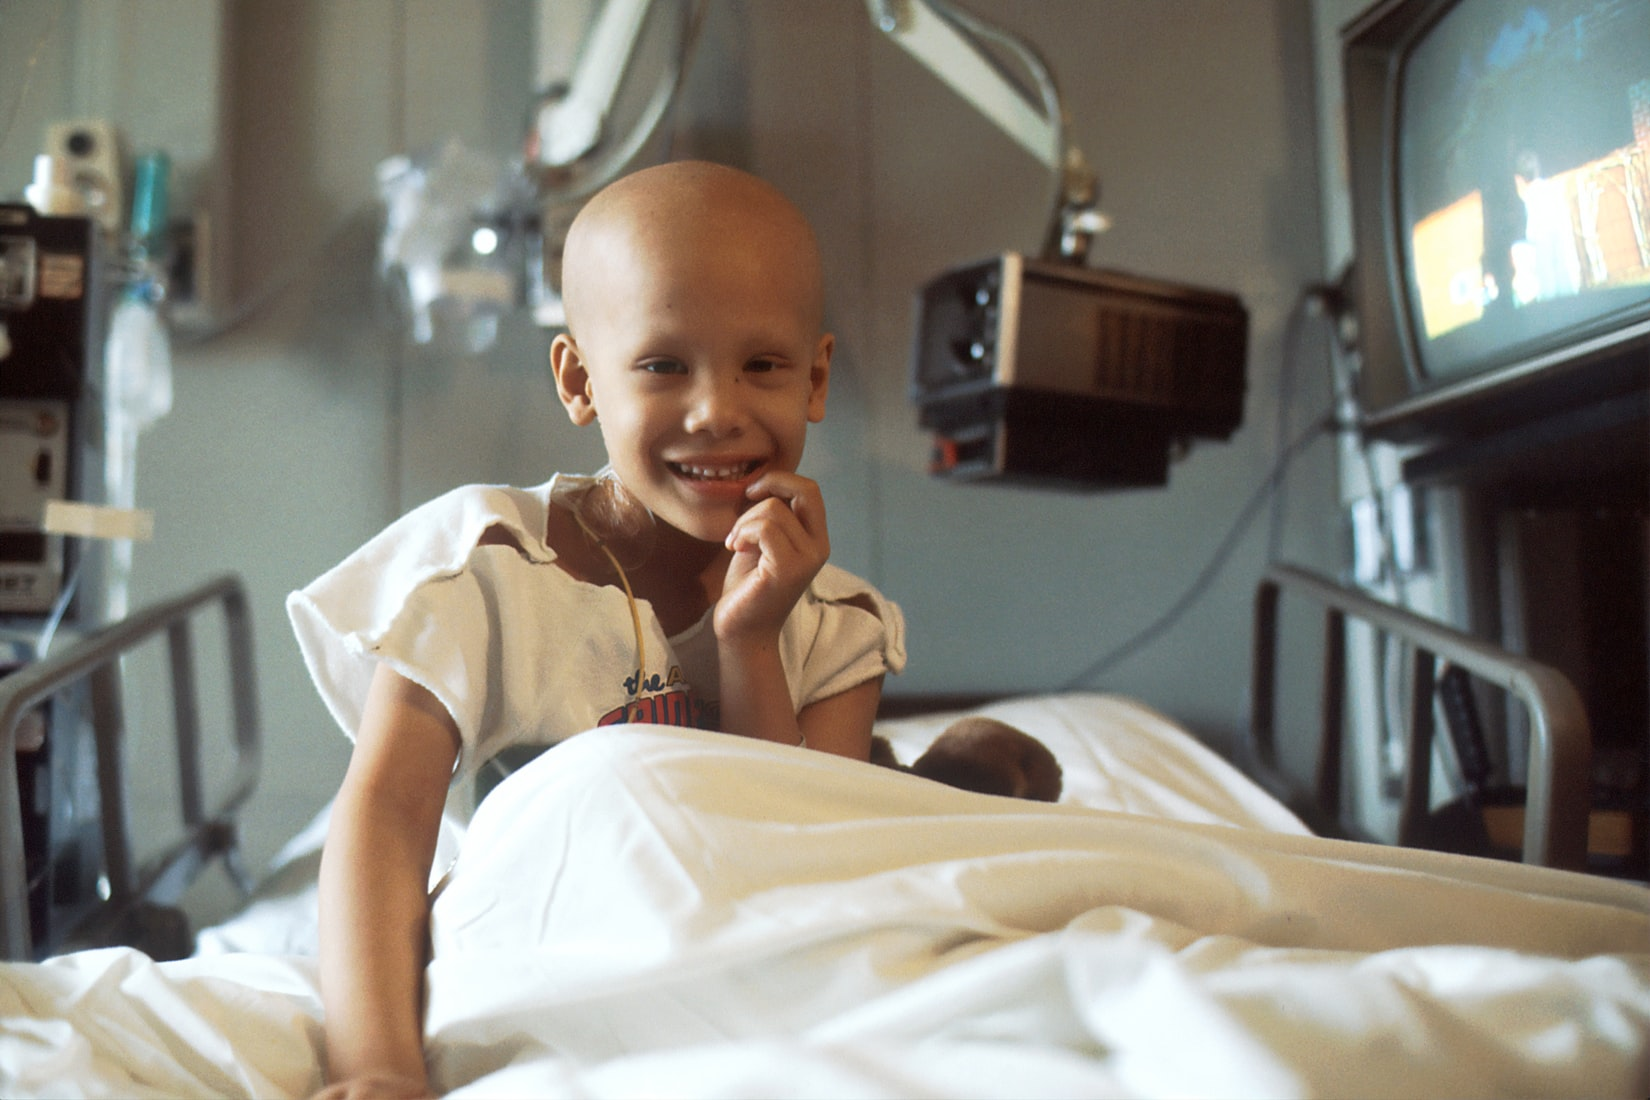 Child with cancer smiling while sitting on hospital bed